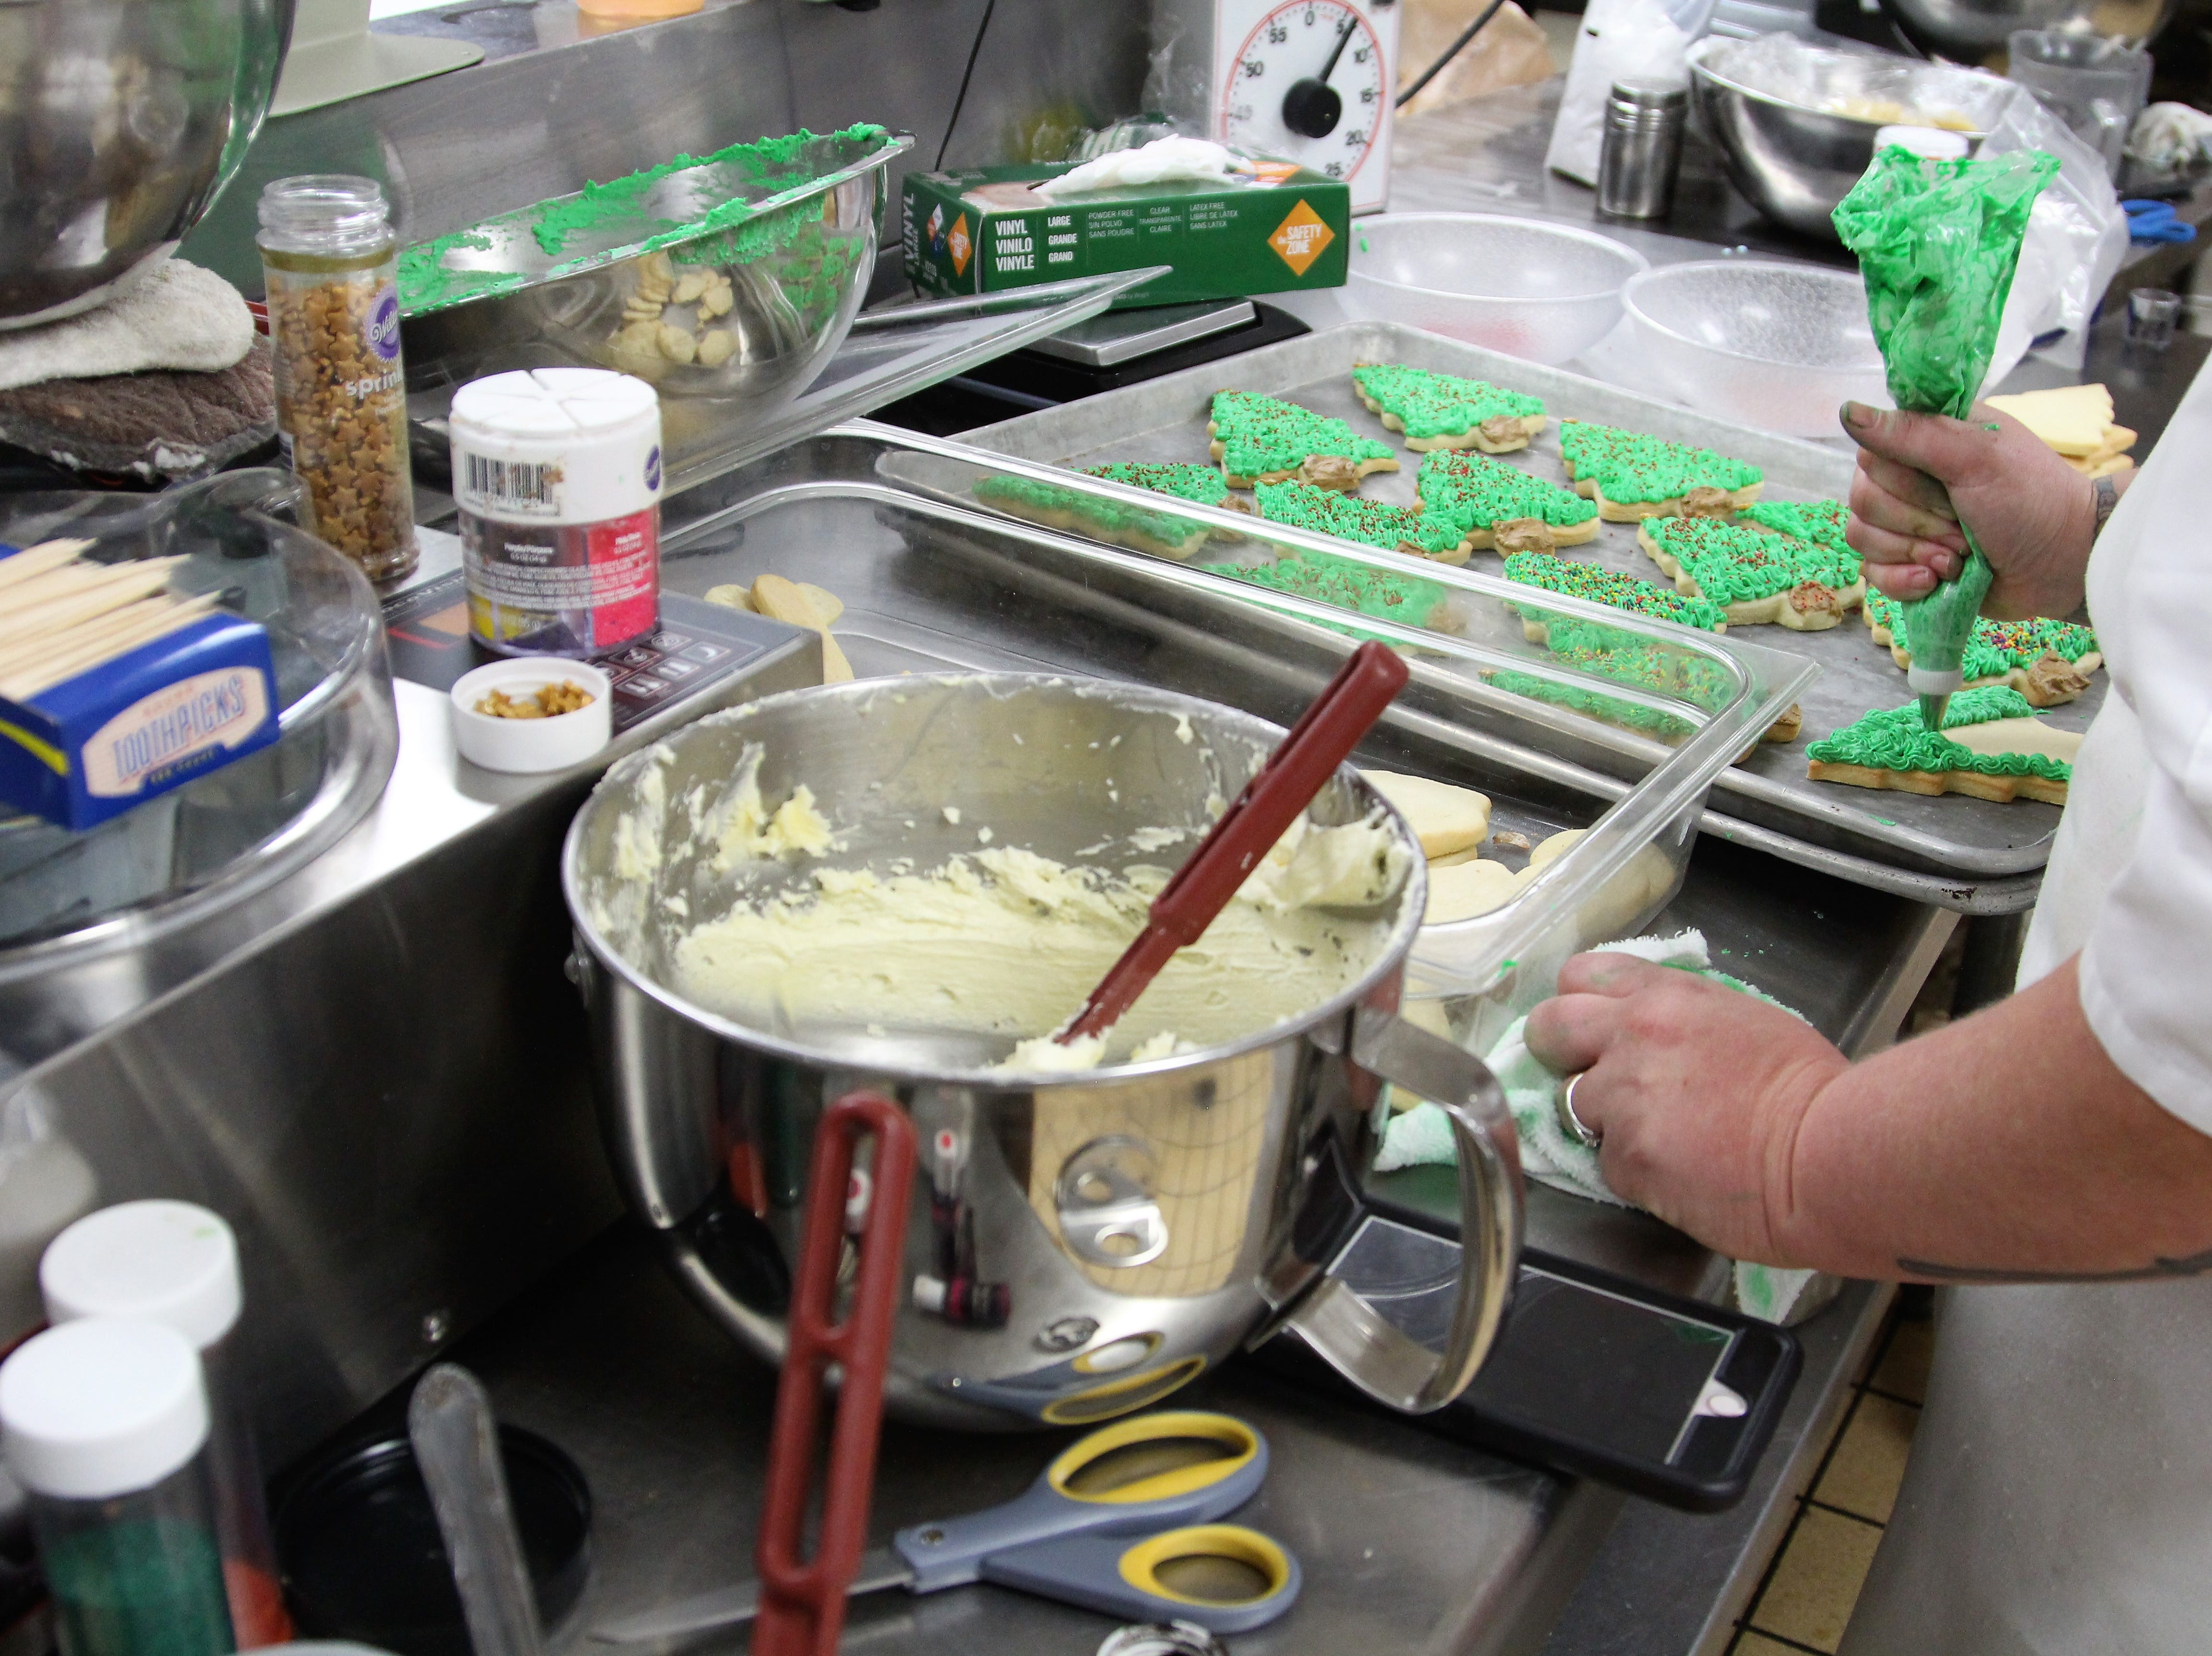 A culinary instructor at Tri-Rivers applies frosting on a batch of cookies Thursday morning. Students from high schools in Marion, Morrow and Union counties stopped by the kitchen, helping bake cookies and make pizzas from scratch.